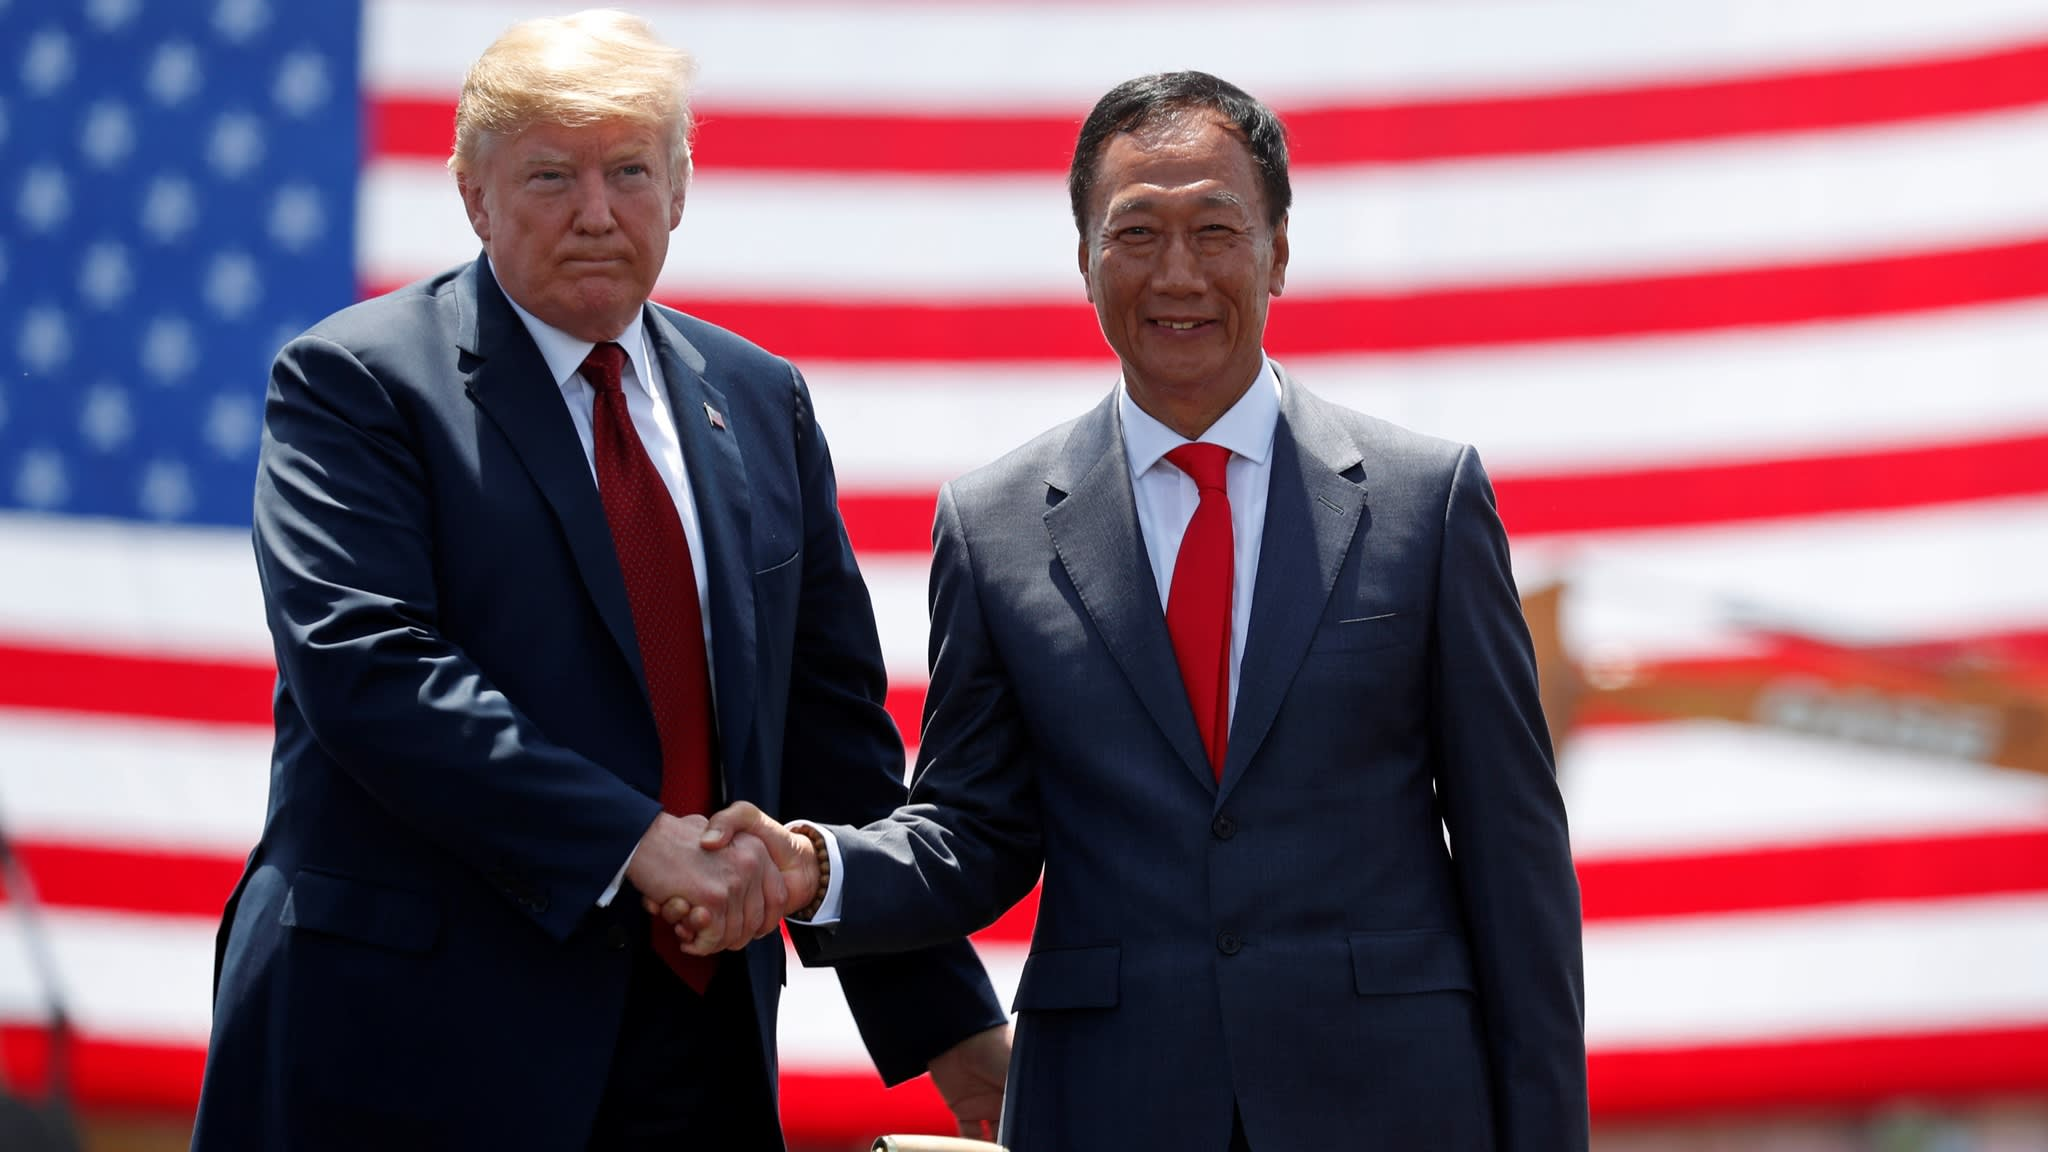 20190417 terry gou and trump reuteres.jpg